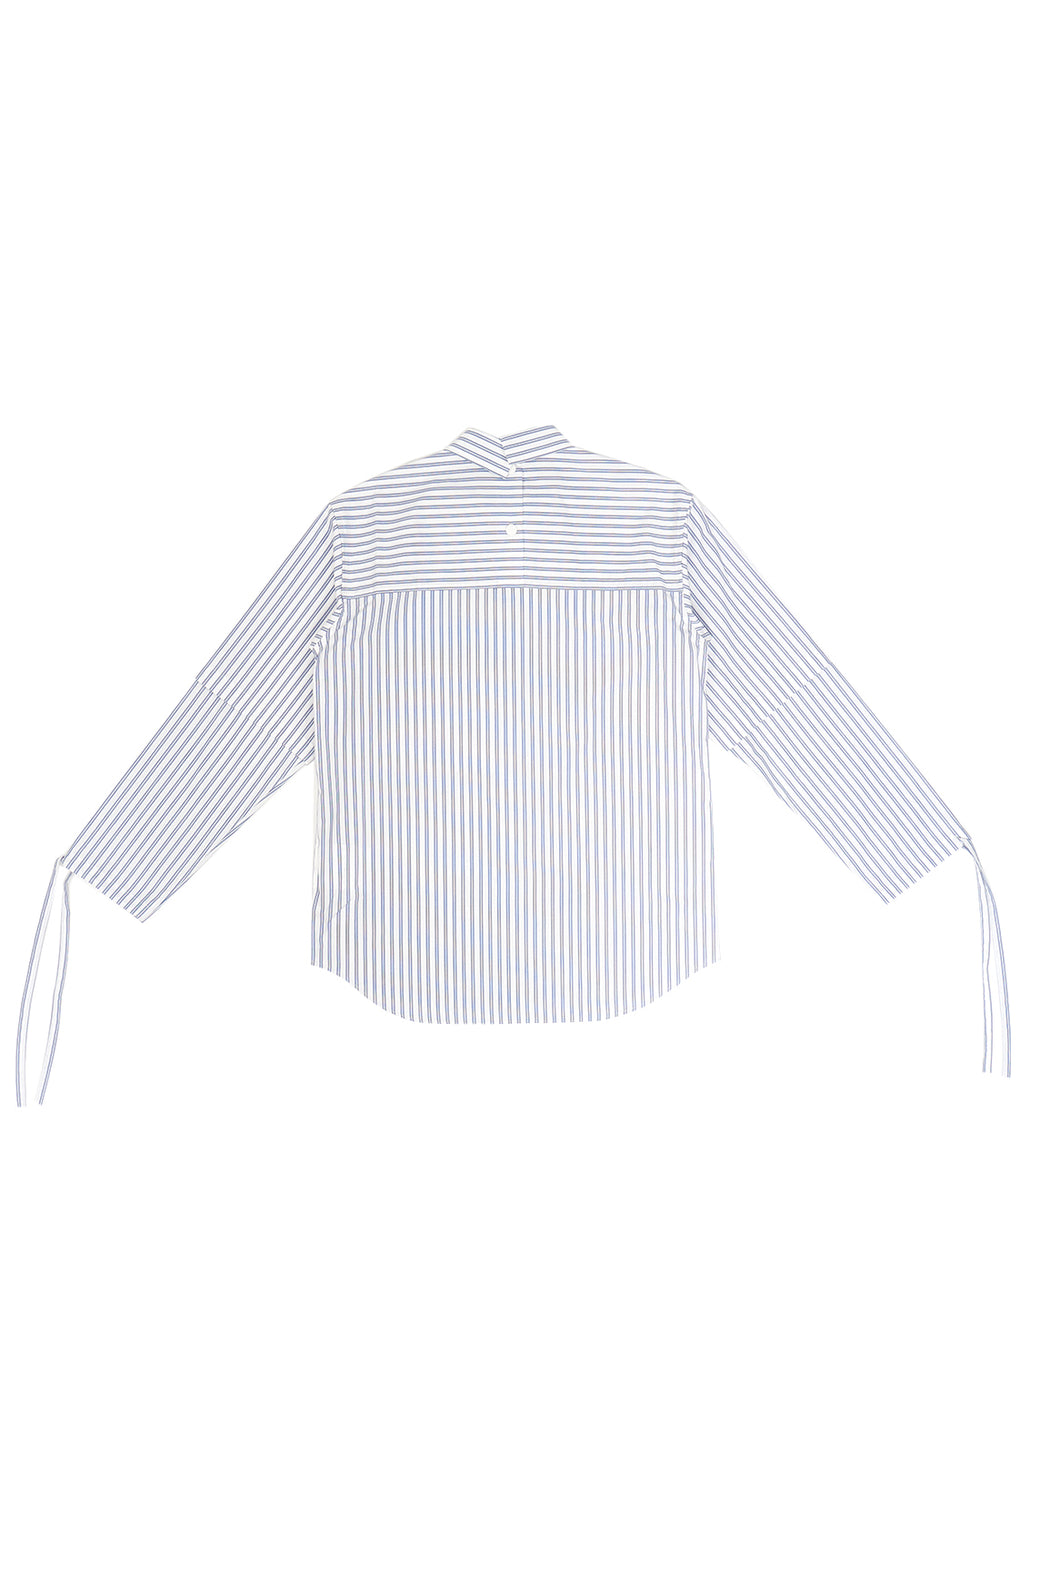 Kudos Soduk Double Sleeve Stripe Shirt - White